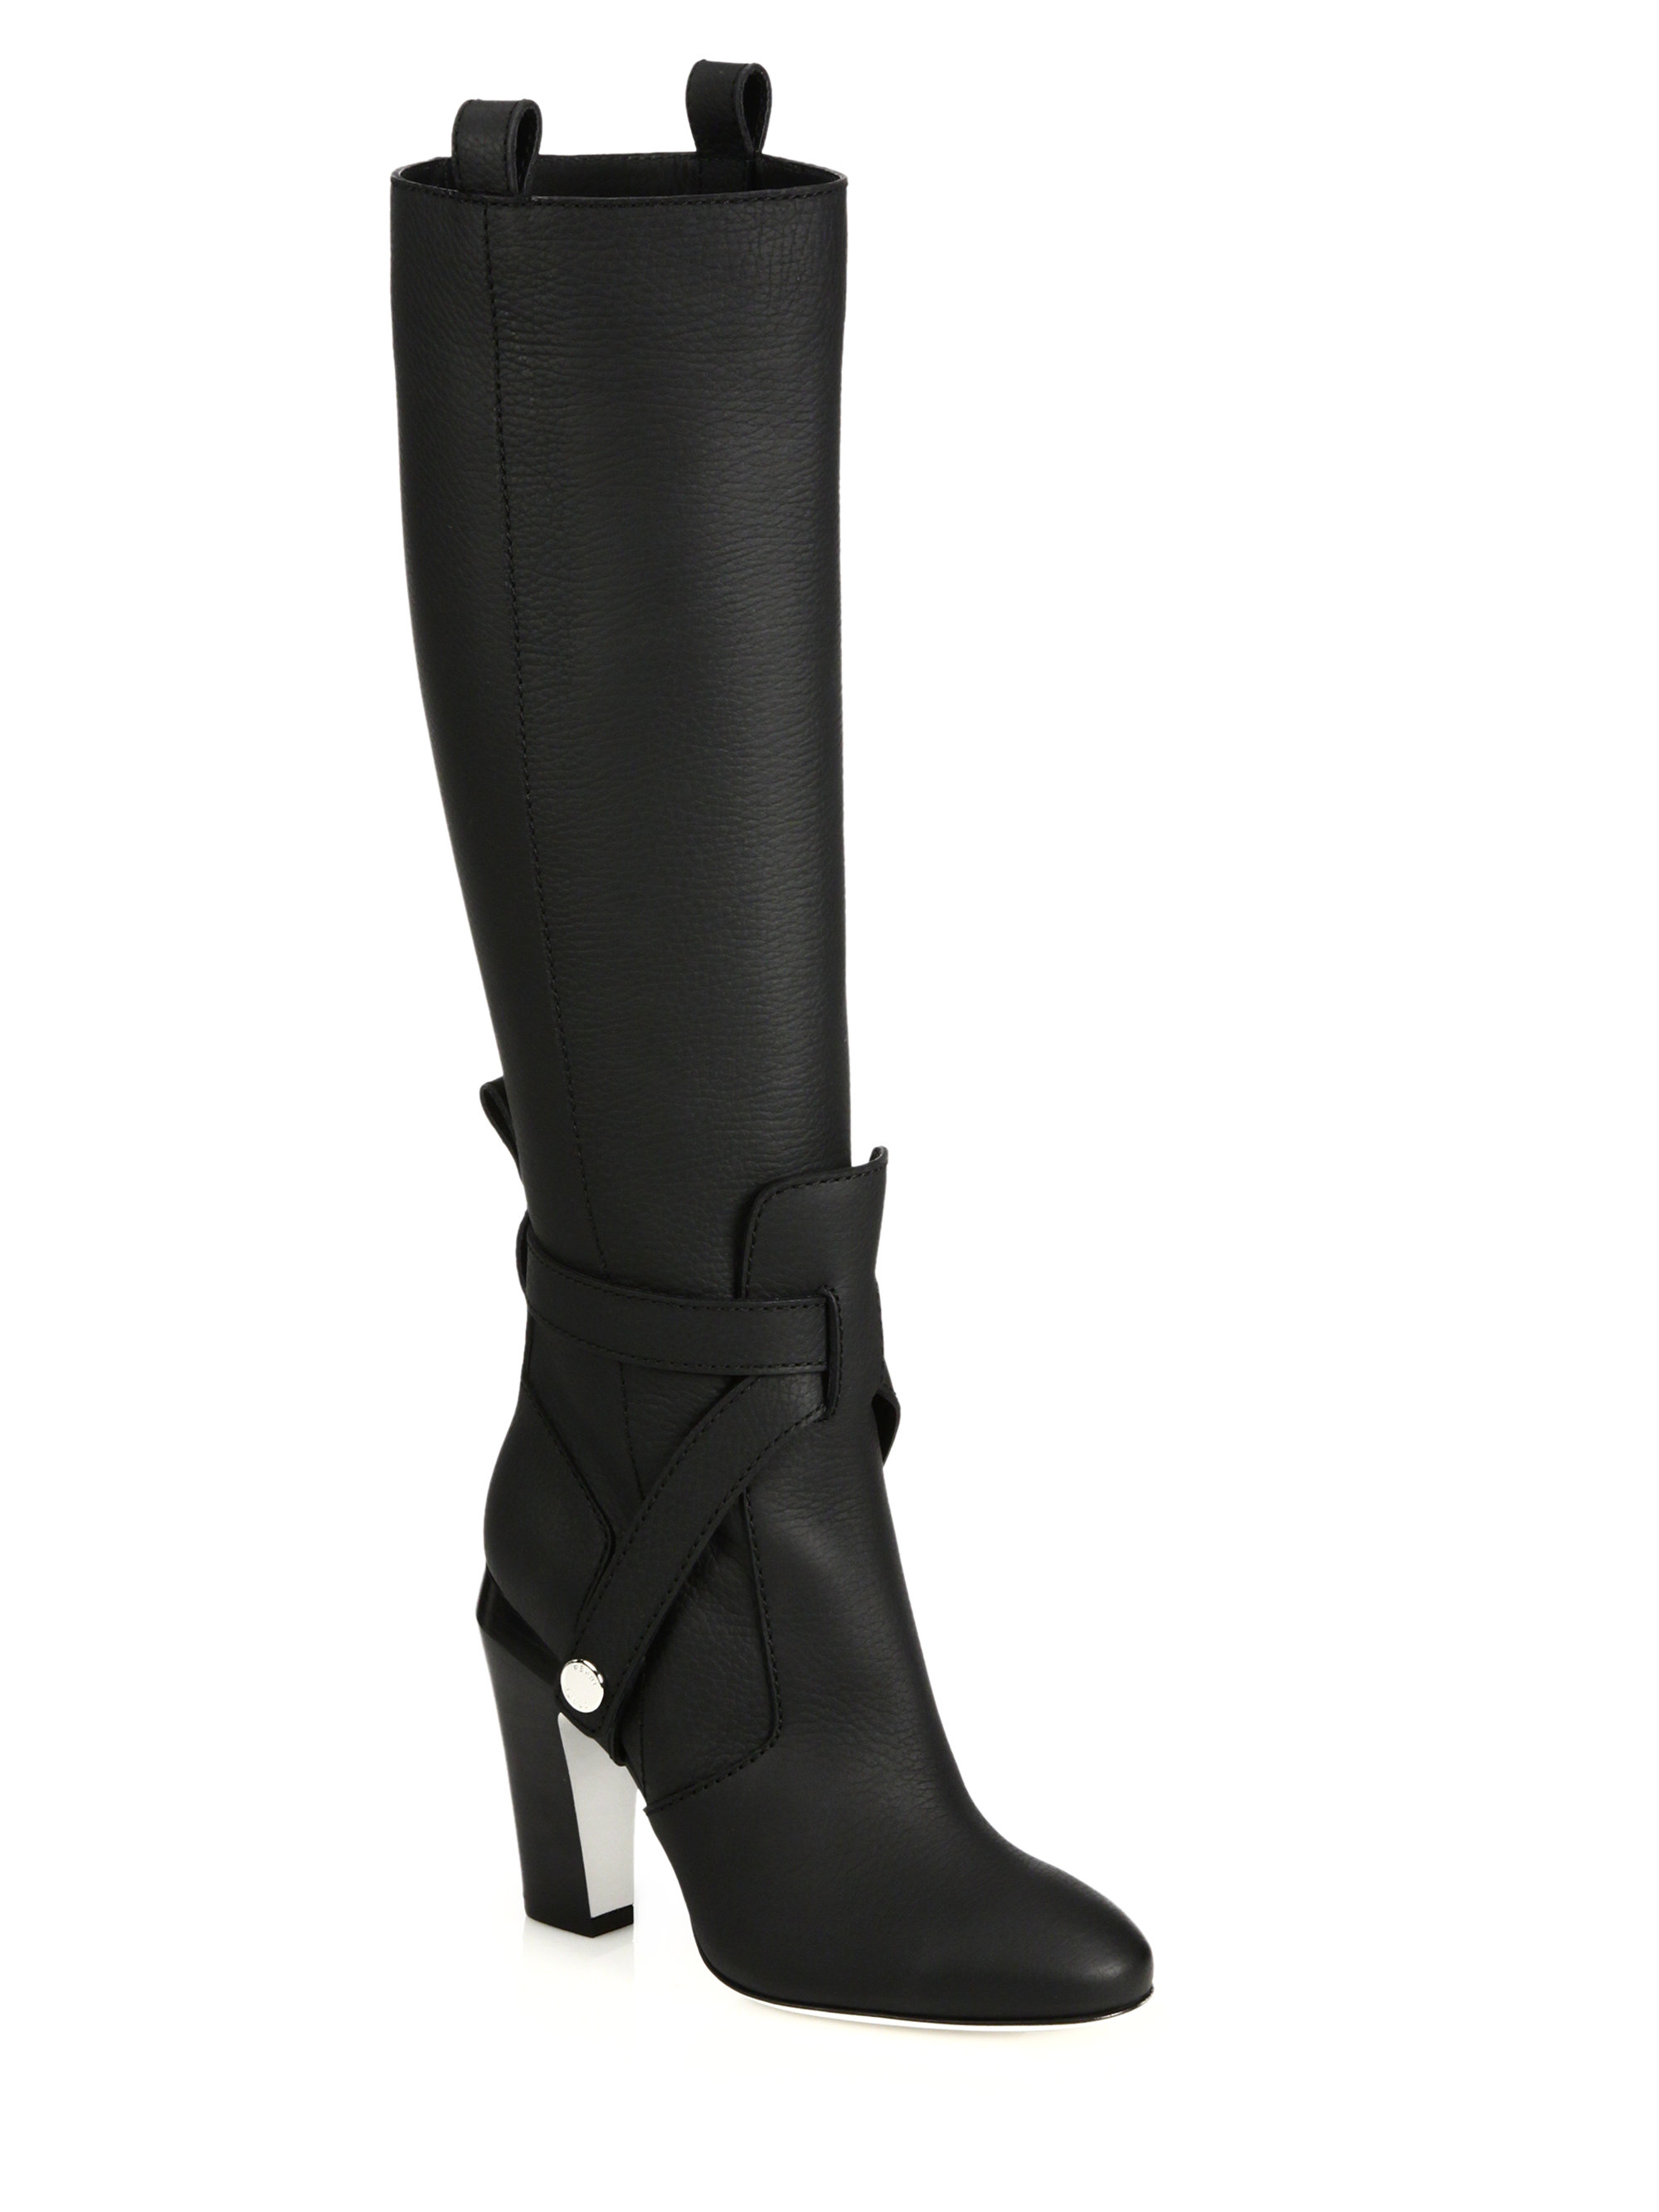 discounts cheap price discount Manchester Fendi Suede Knee-High Boots discount shop offer visa payment cheap online UONqqH